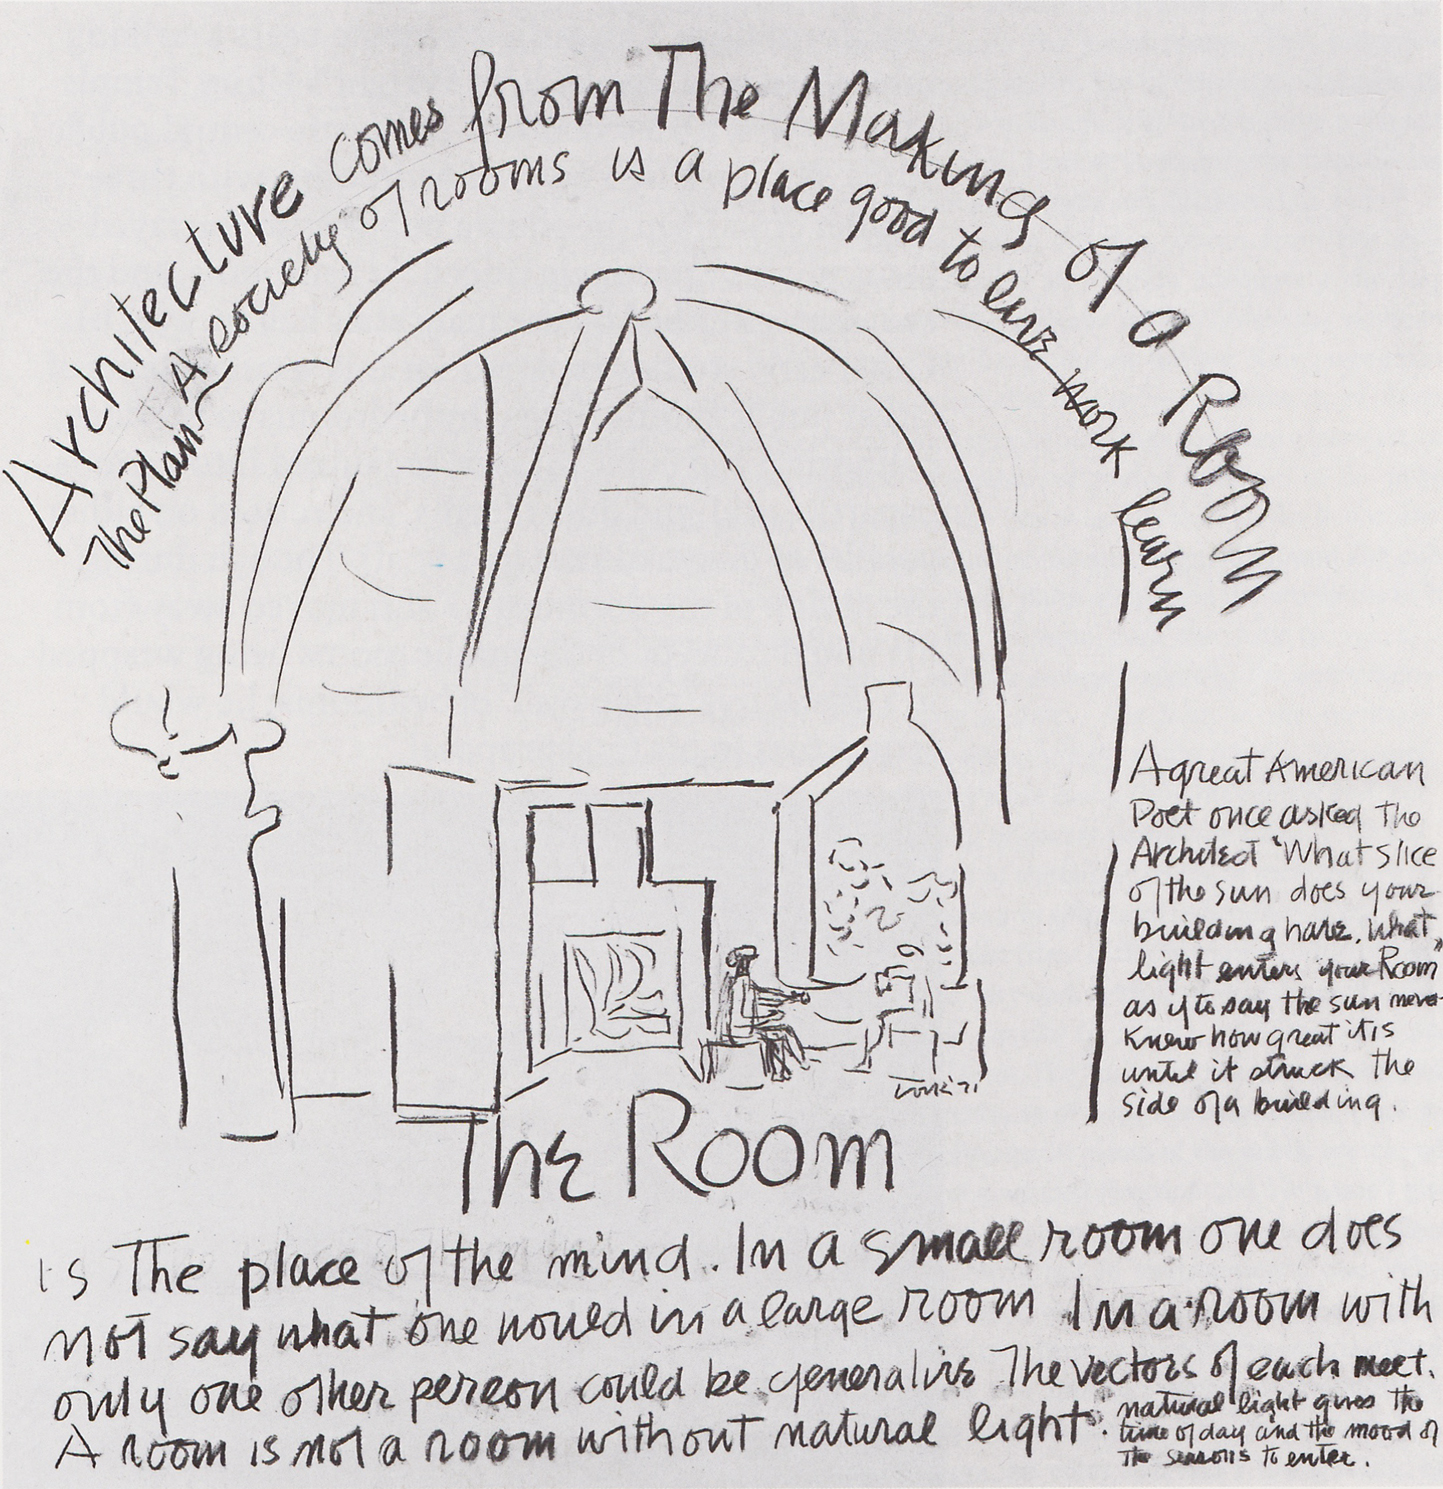 Architecture Comes from The Making of a Room